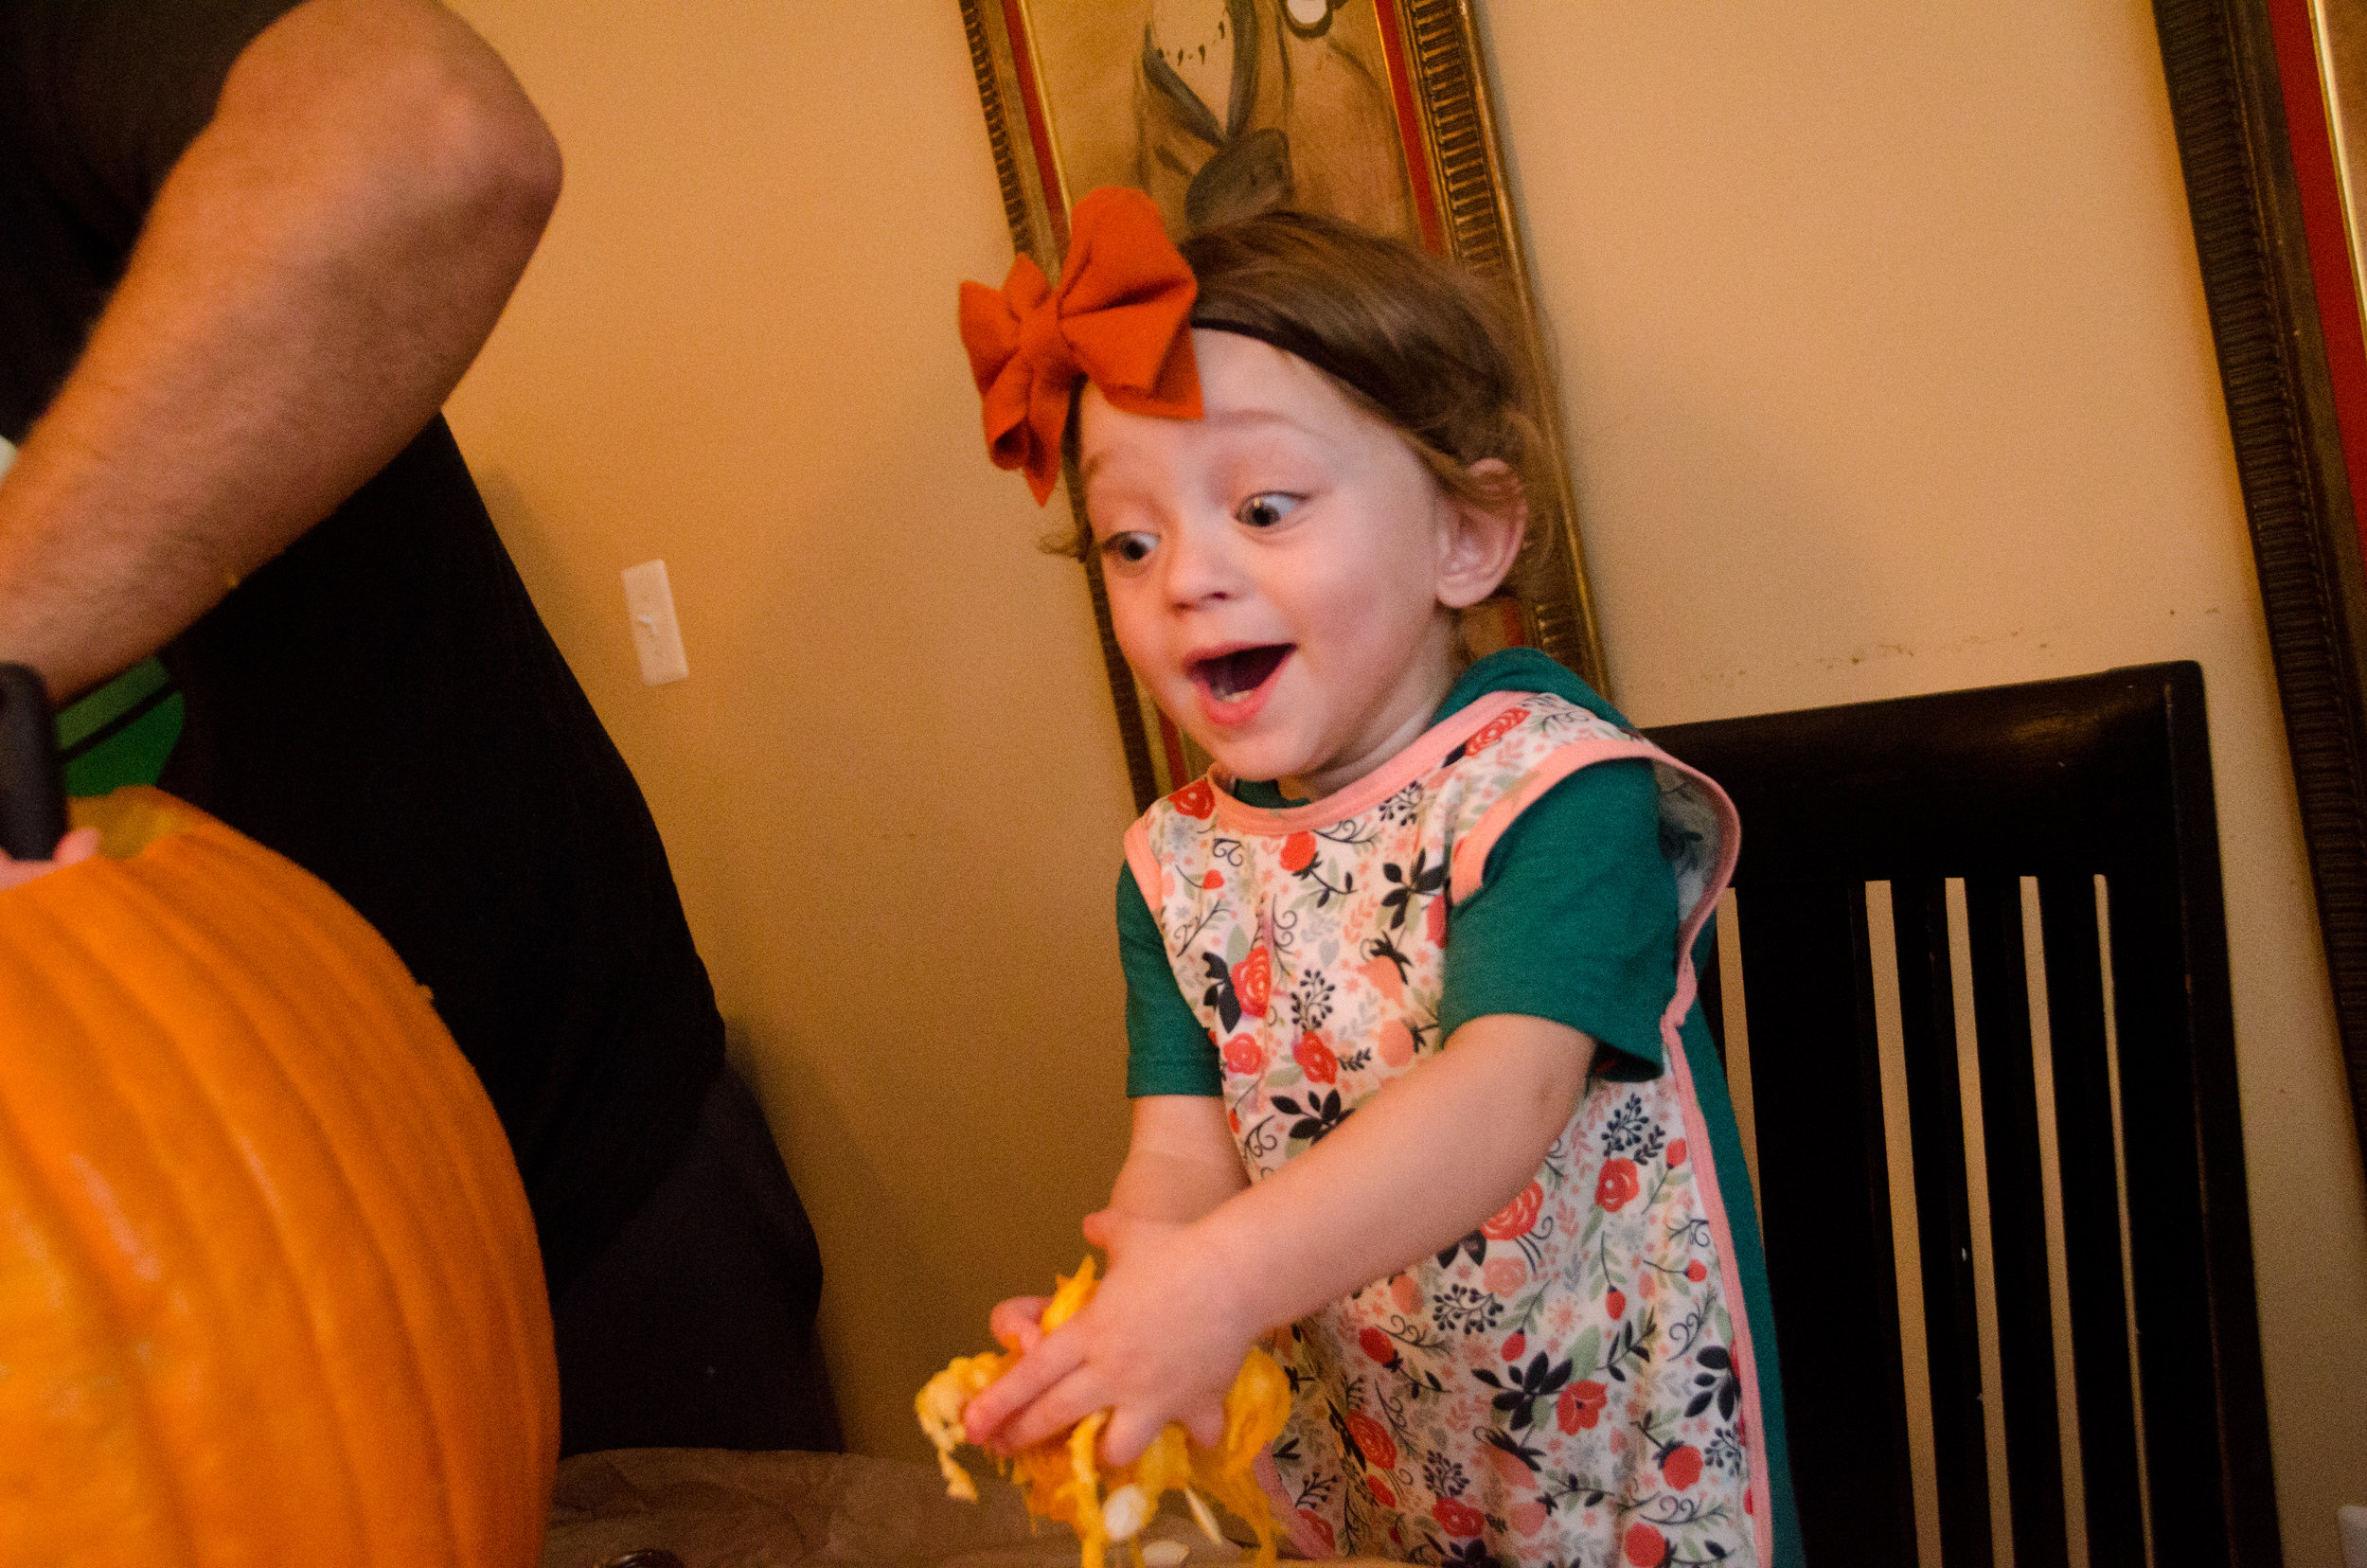 addie belle - 2 years old - october 2017 - shegotguts.com-66.jpg